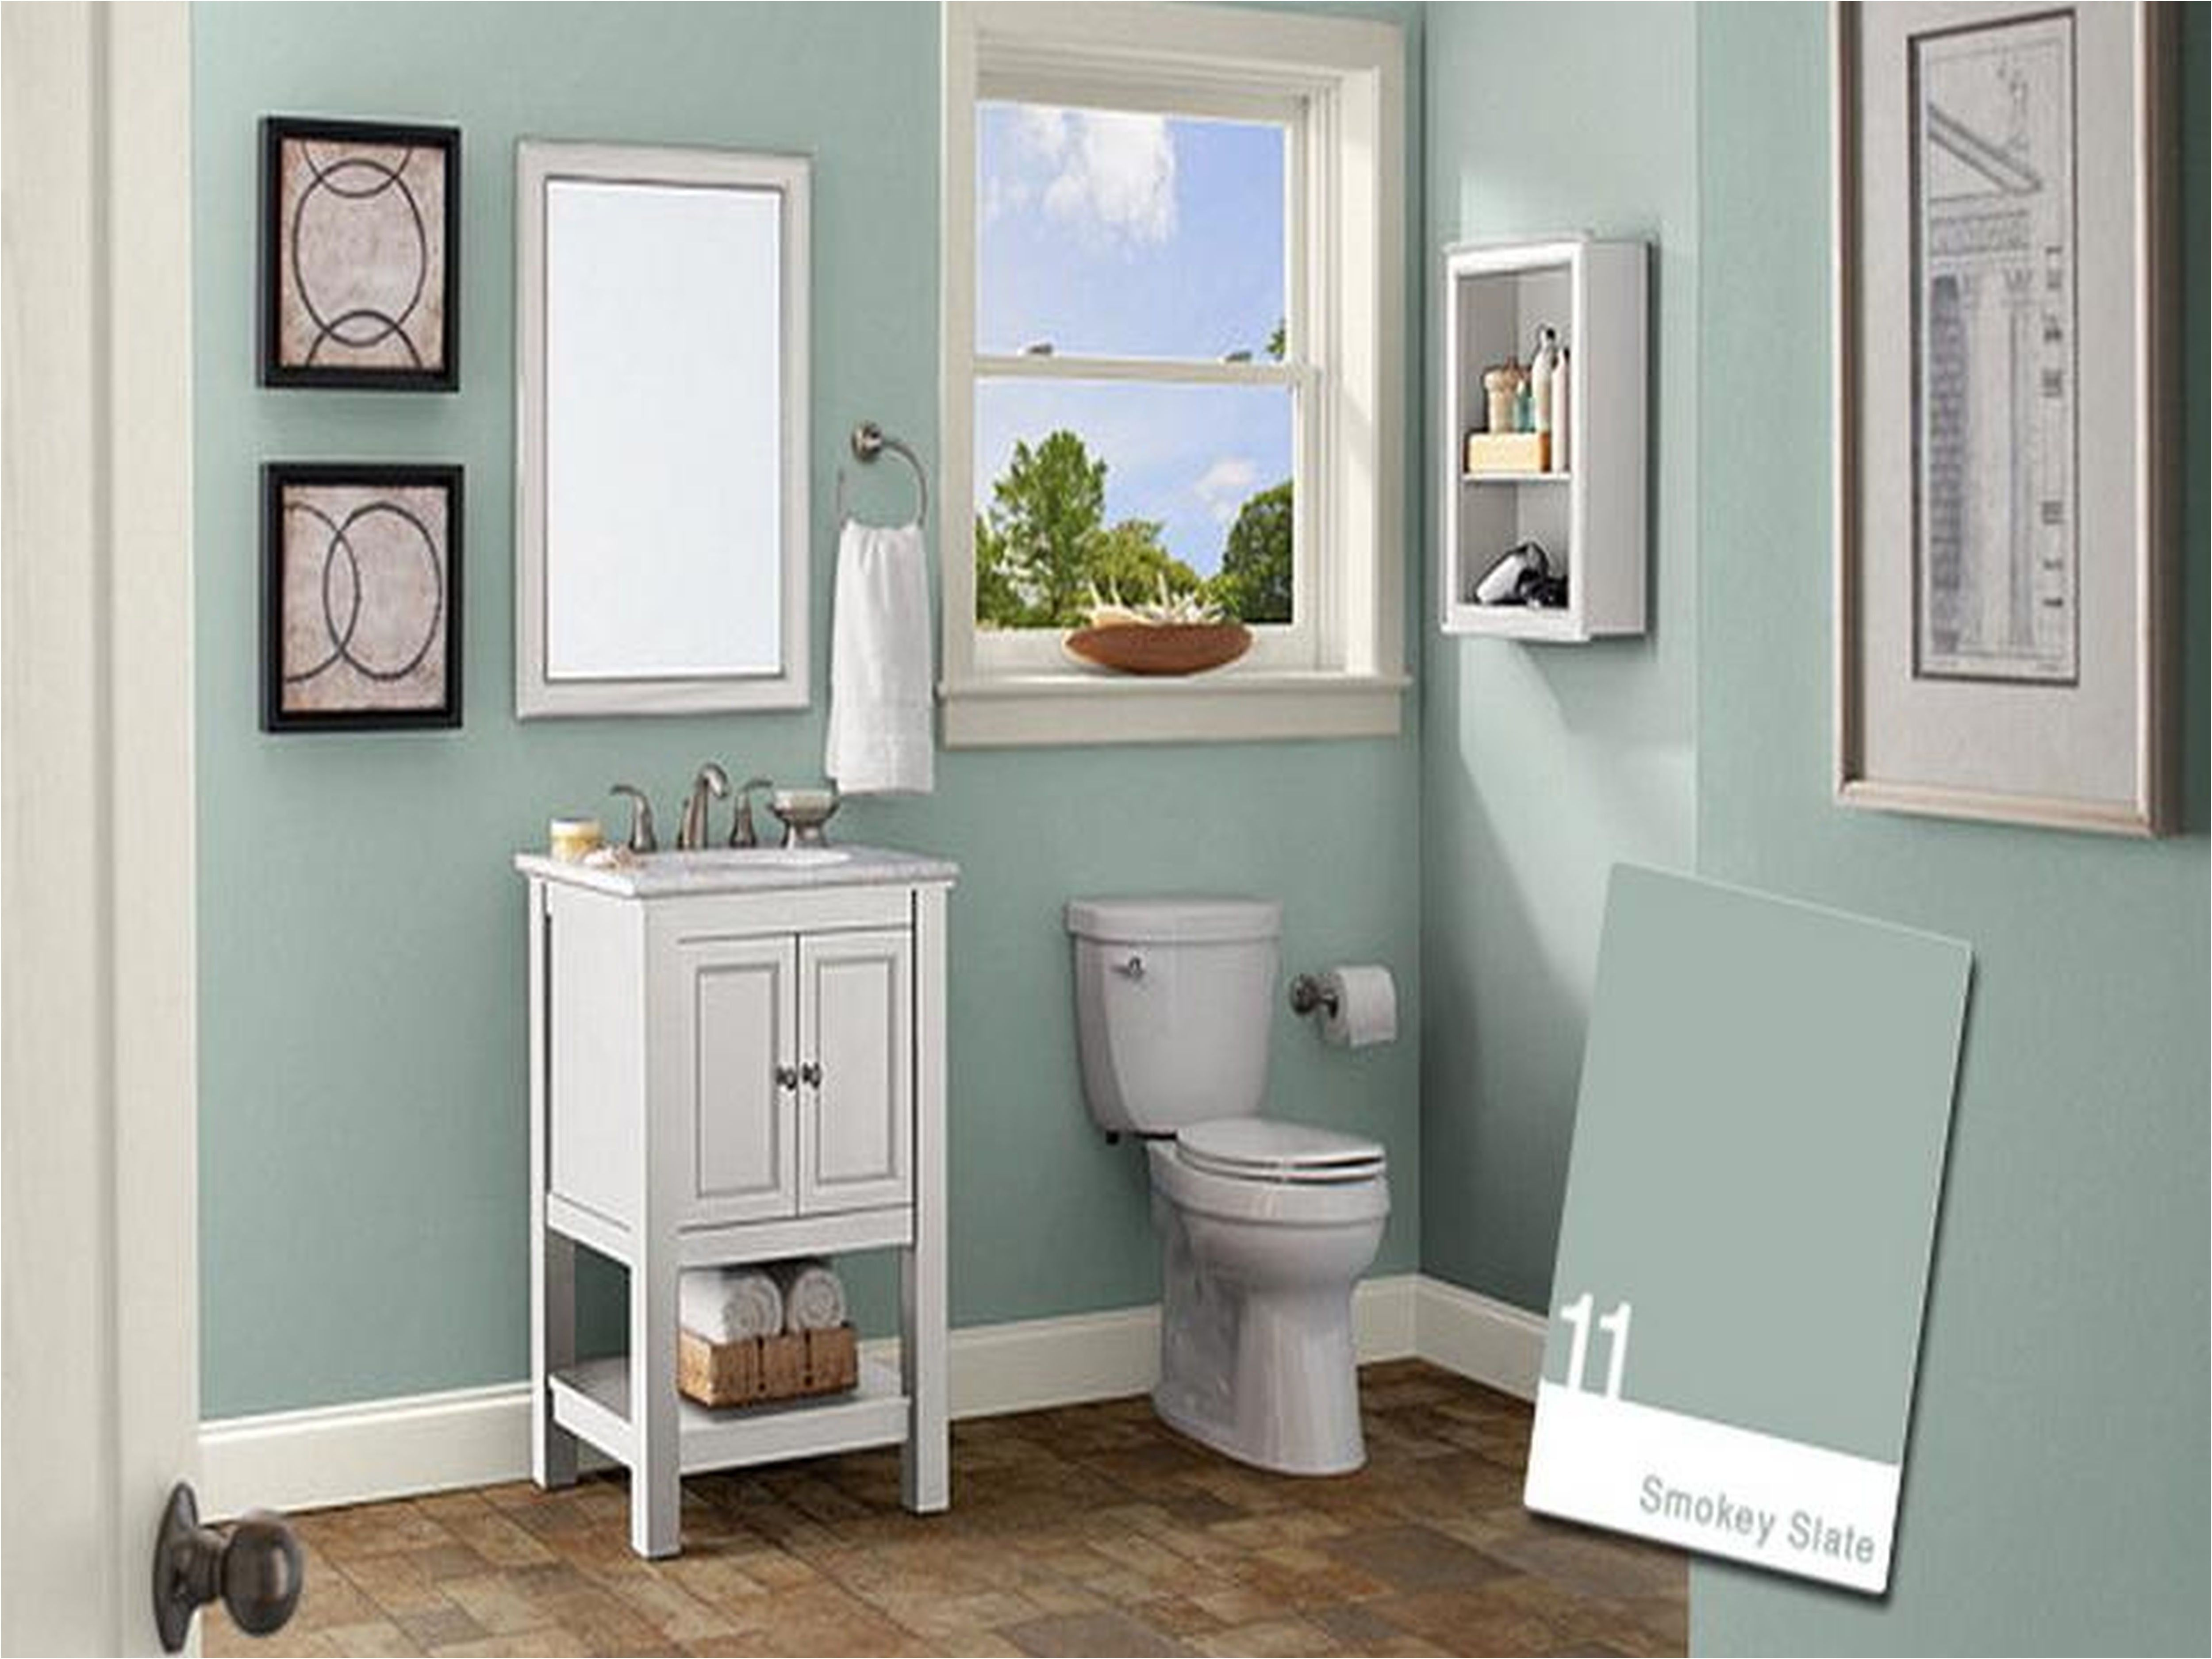 Paint Color For Bathrooms Without Windows Paint Colors For From Wall Colors For Small Bathrooms Small Bathroom Colors Small Bathroom Paint Bathroom Wall Colors